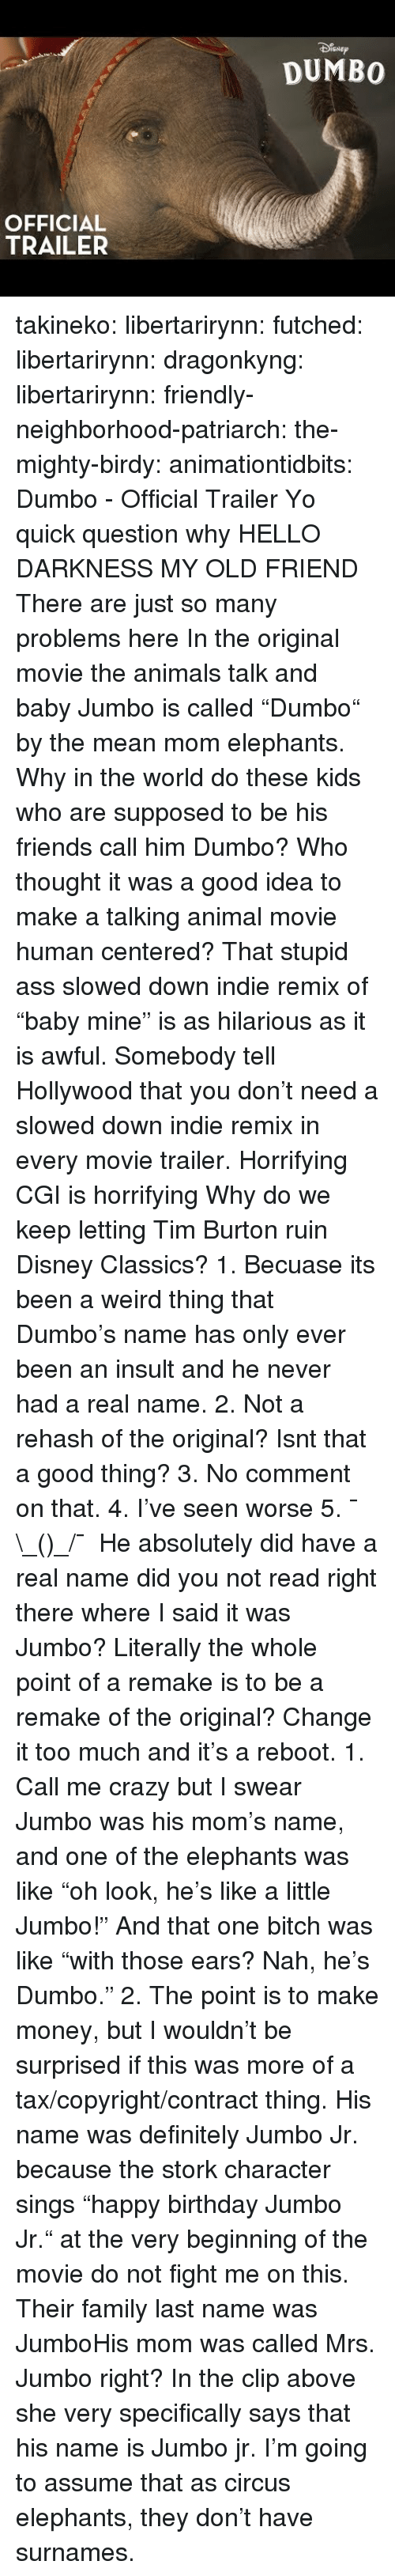 "no comment: SNEp  DUMBO  OFFICIAL  TRAILER takineko:  libertarirynn: futched:   libertarirynn:   dragonkyng:   libertarirynn:   friendly-neighborhood-patriarch:  the-mighty-birdy:   animationtidbits:  Dumbo - Official Trailer  Yo quick question why   HELLO DARKNESS MY OLD FRIEND   There are just so many problems here In the original movie the animals talk and baby Jumbo is called ""Dumbo"" by the mean mom elephants. Why in the world do these kids who are supposed to be his friends call him Dumbo? Who thought it was a good idea to make a talking animal movie human centered? That stupid ass slowed down indie remix of ""baby mine"" is as hilarious as it is awful. Somebody tell Hollywood that you don't need a slowed down indie remix in every movie trailer. Horrifying CGI is horrifying Why do we keep letting Tim Burton ruin Disney Classics?   1. Becuase its been a weird thing that Dumbo's name has only ever been an insult and he never had a real name. 2. Not a rehash of the original? Isnt that a good thing? 3. No comment on that. 4. I've seen worse 5. ¯\_(ツ)_/¯   He absolutely did have a real name did you not read right there where I said it was Jumbo? Literally the whole point of a remake is to be a remake of the original? Change it too much and it's a reboot.   1. Call me crazy but I swear Jumbo was his mom's name, and one of the elephants was like ""oh look, he's like a little Jumbo!"" And that one bitch was like ""with those ears? Nah, he's Dumbo."" 2. The point is to make money, but I wouldn't be surprised if this was more of a tax/copyright/contract thing.   His name was definitely Jumbo Jr. because the stork character sings ""happy birthday Jumbo Jr."" at the very beginning of the movie do not fight me on this.  Their family last name was JumboHis mom was called Mrs. Jumbo right?  In the clip above she very specifically says that his name is Jumbo jr. I'm going to assume that as circus elephants, they don't have surnames."